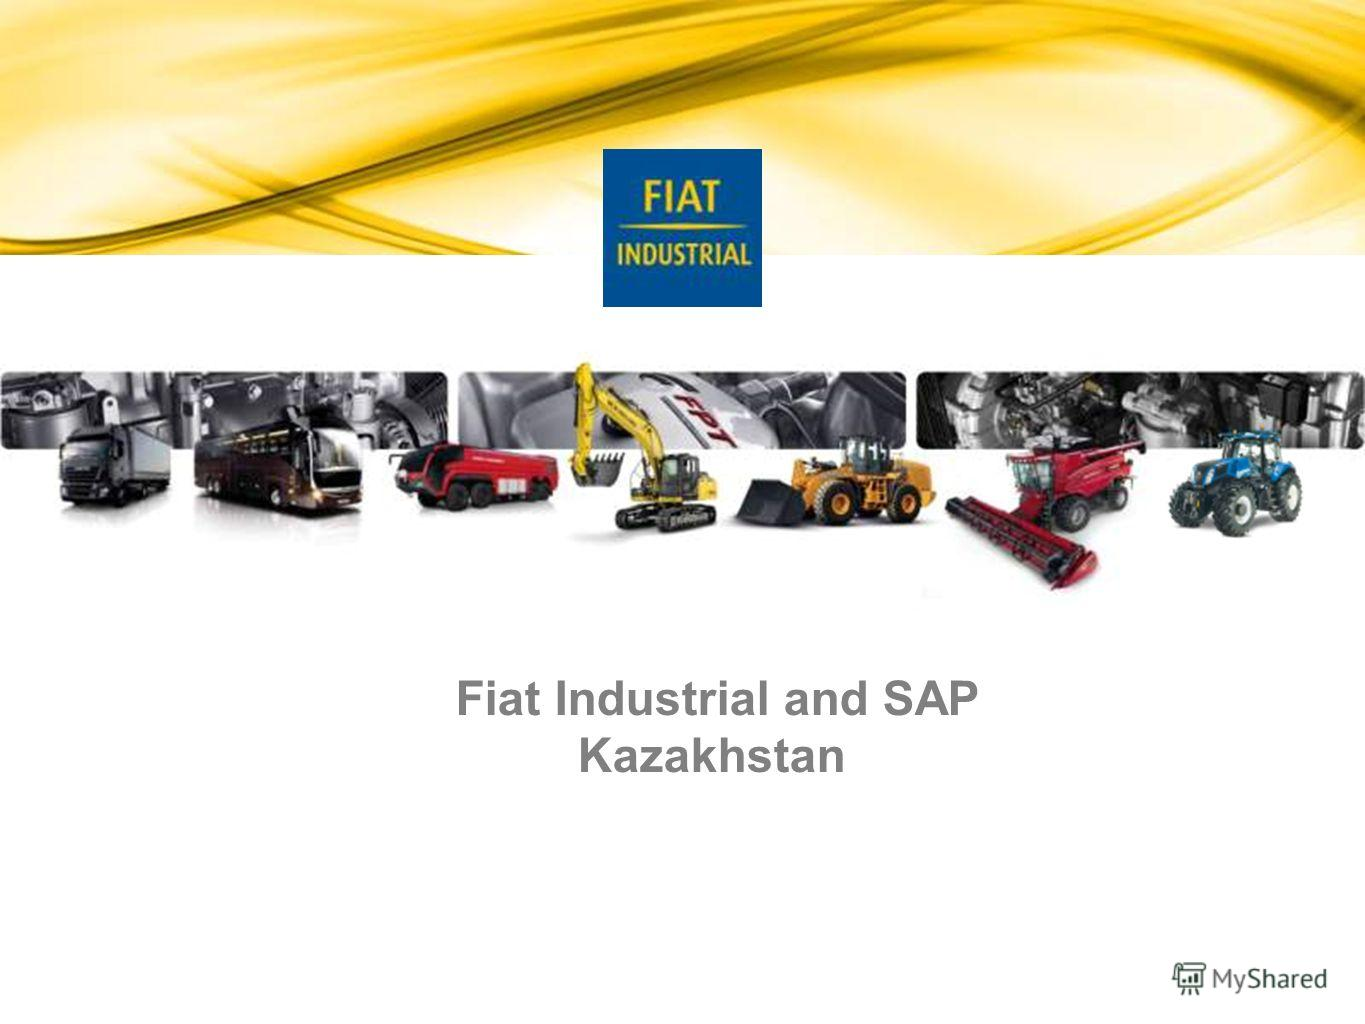 Fiat Industrial and SAP Kazakhstan